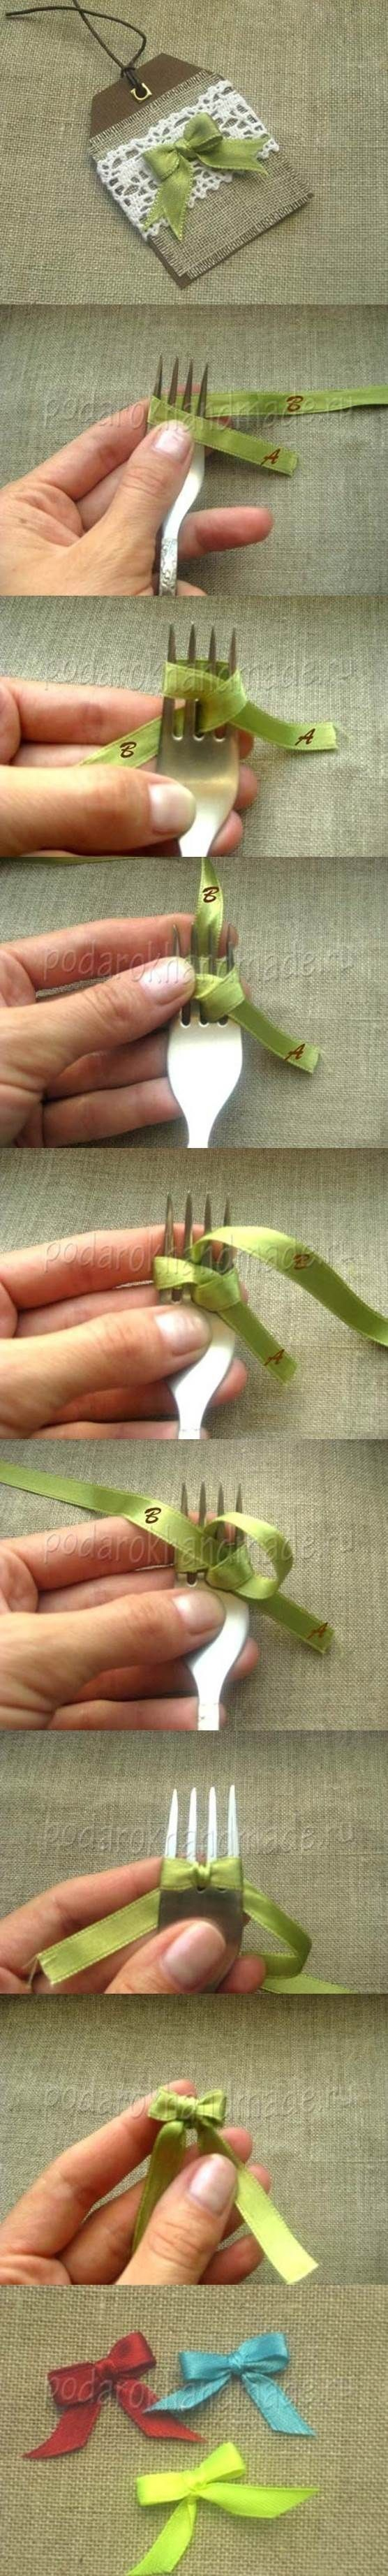 How to make a mini bow